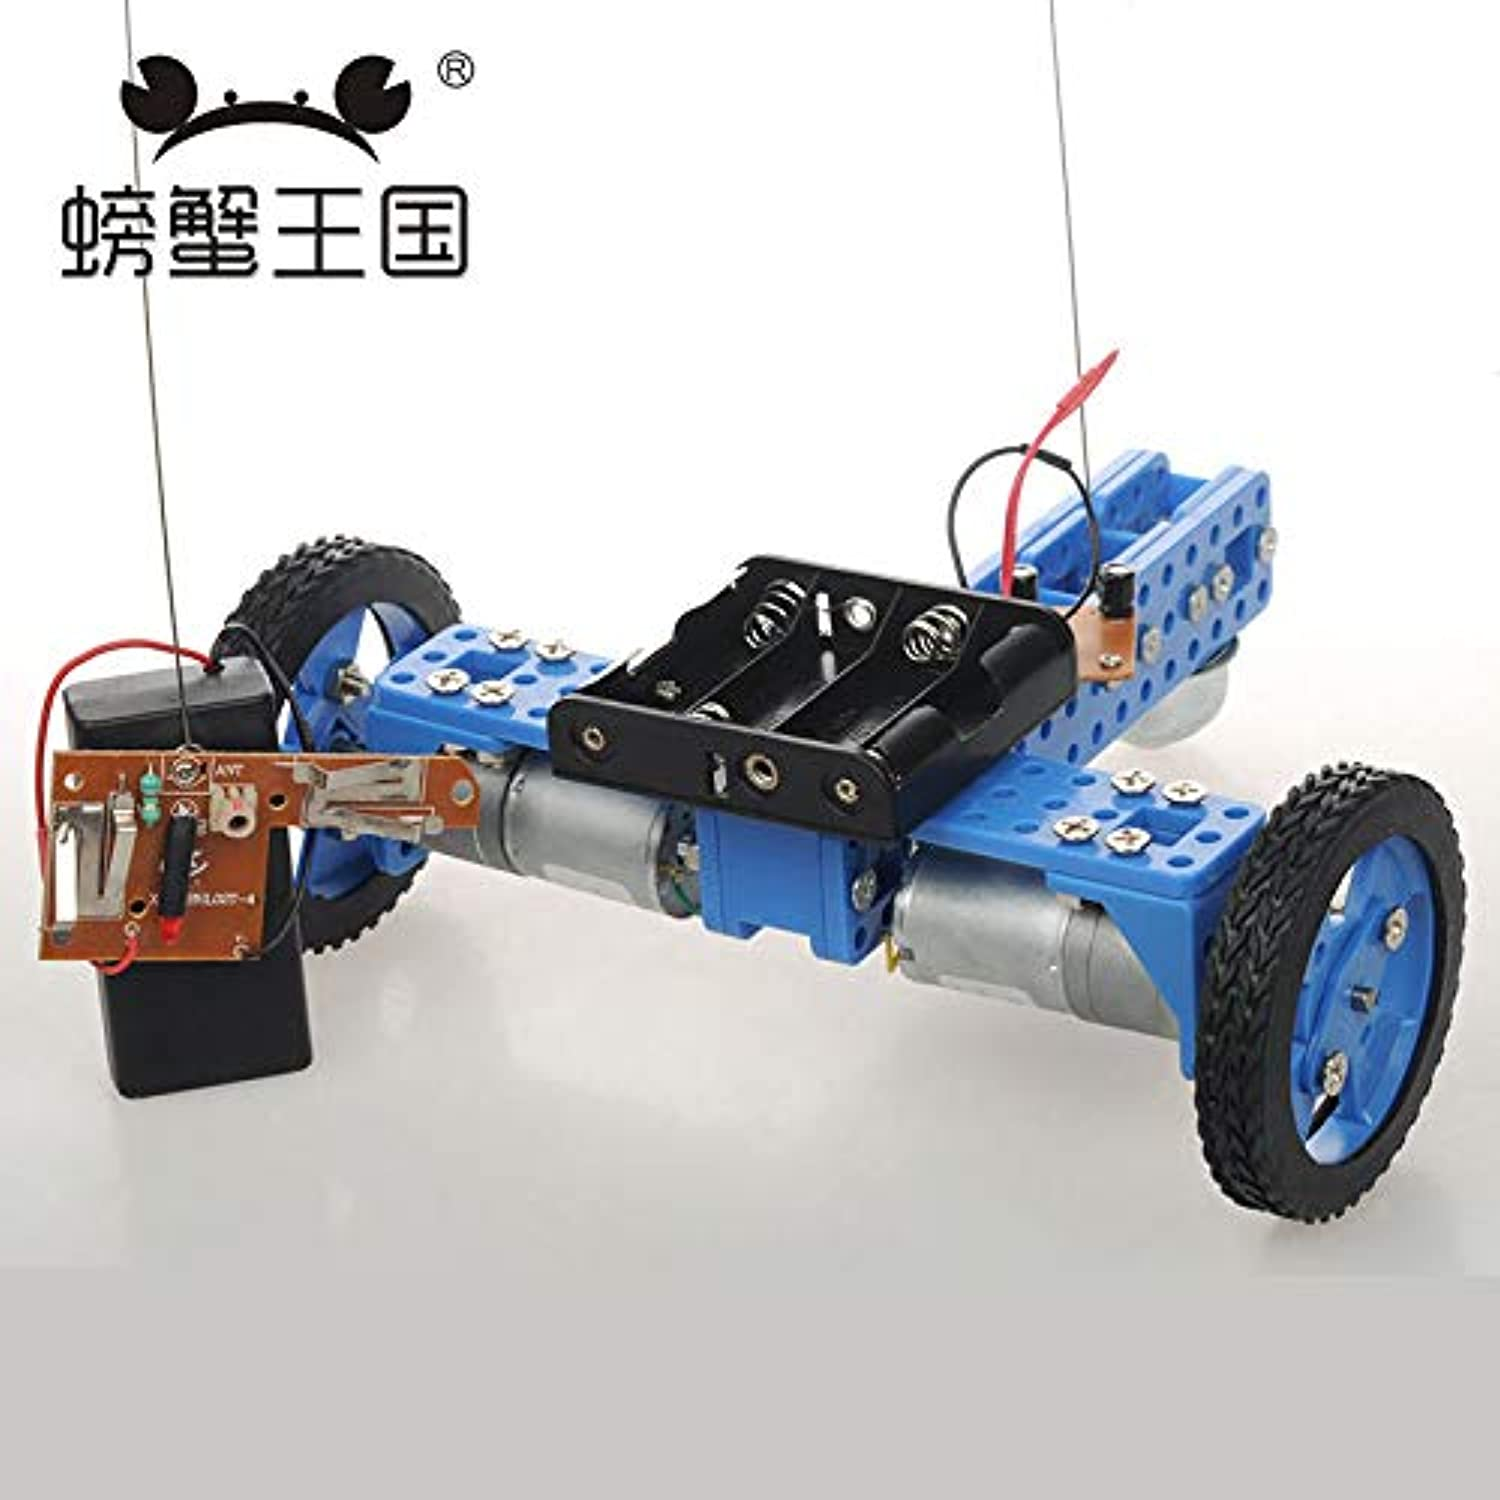 Generic PW M20 DIY Mini RC Car with Remote Controller Universal Wheel Technology Invention Funny Puzzle Education KD Car Toy